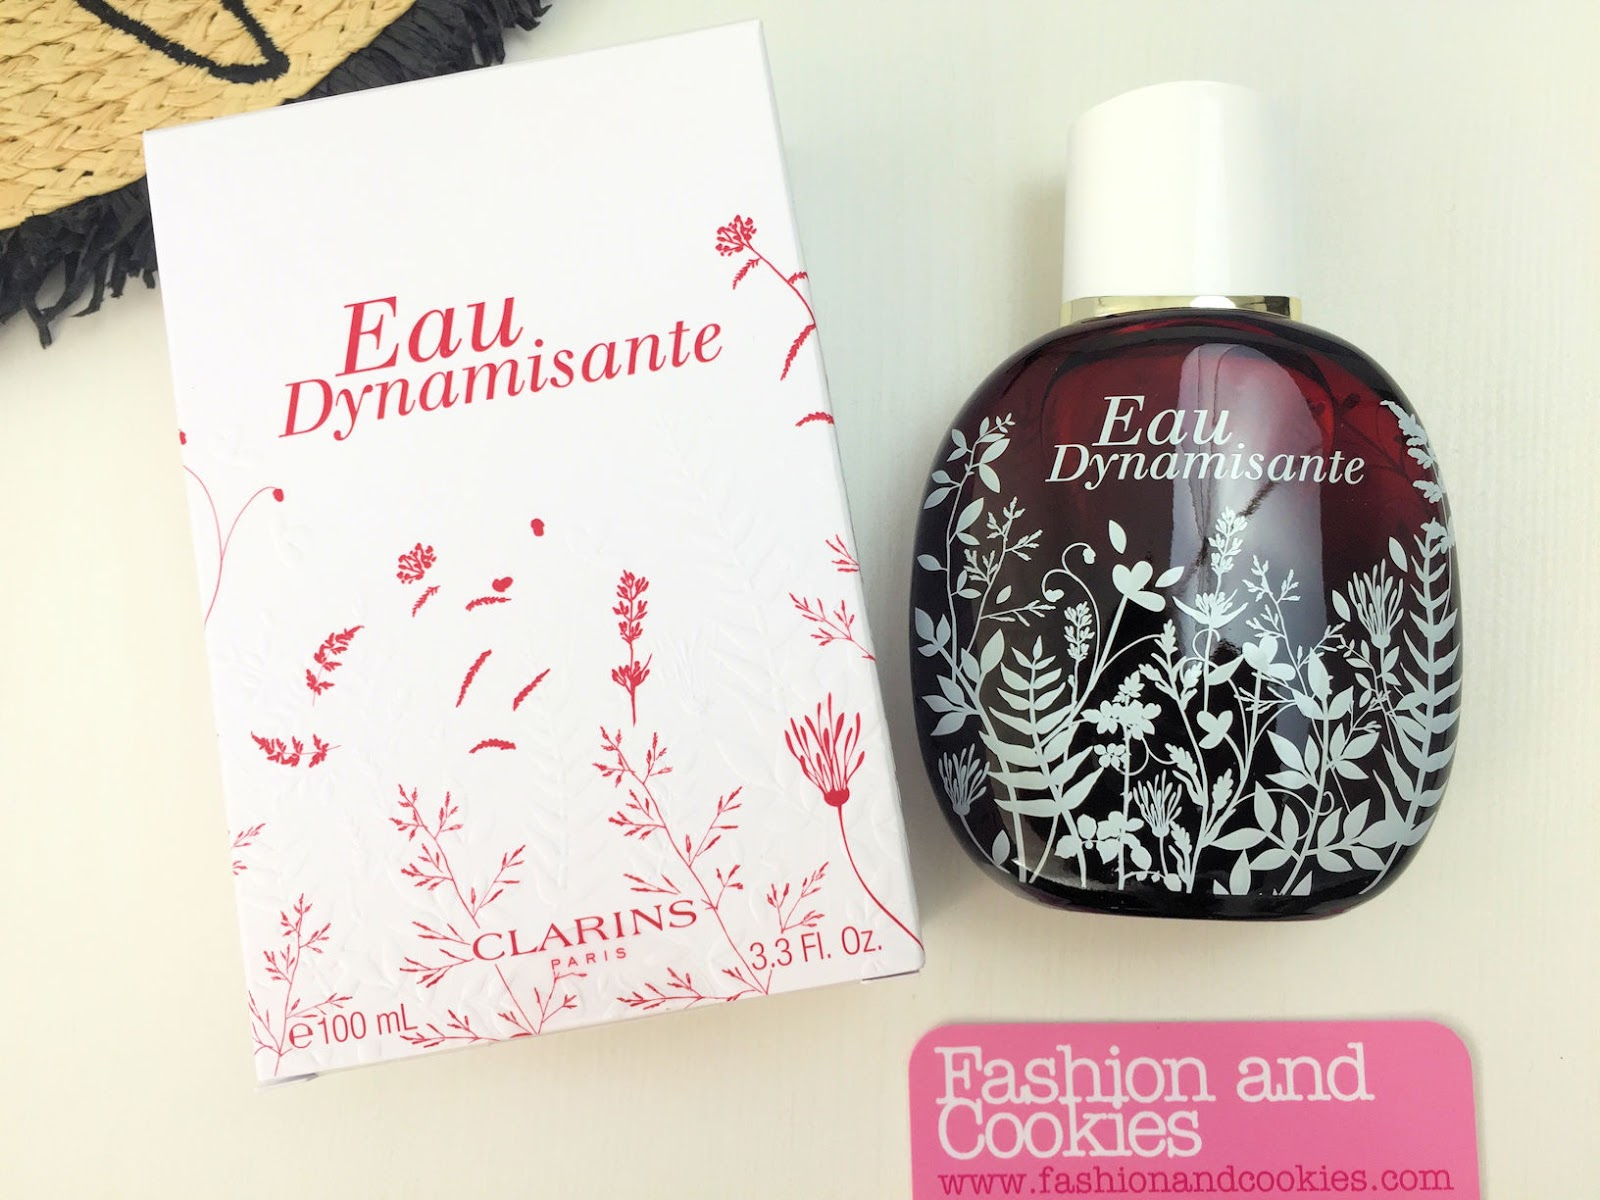 Eau Dynamisante di Clarins compie 30 anni su Fashion and Cookies beauty blog, beauty blogger